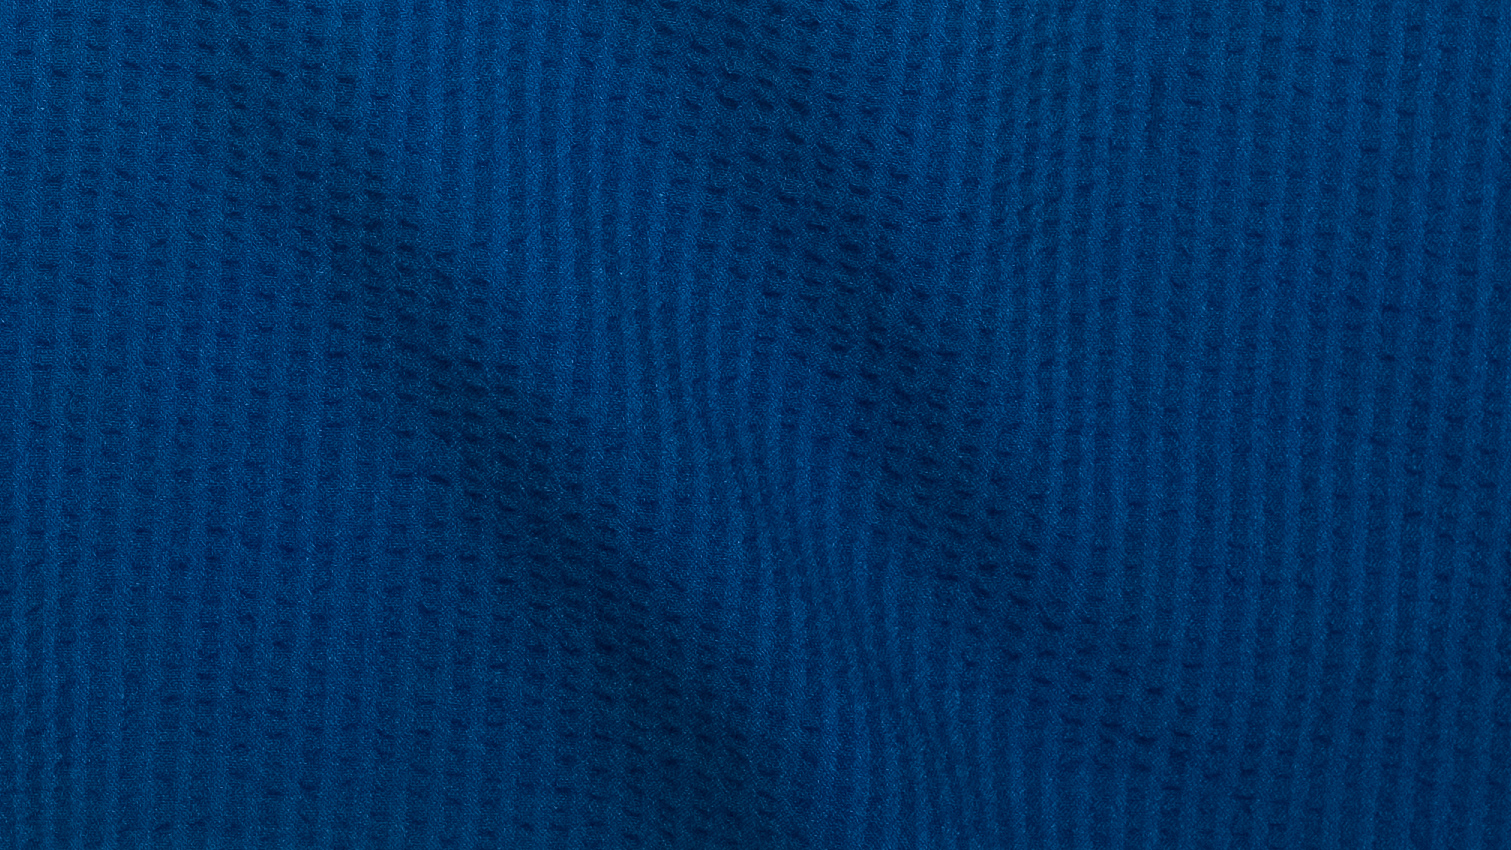 Riviera blue - the star of the show and our single best-selling cloth.